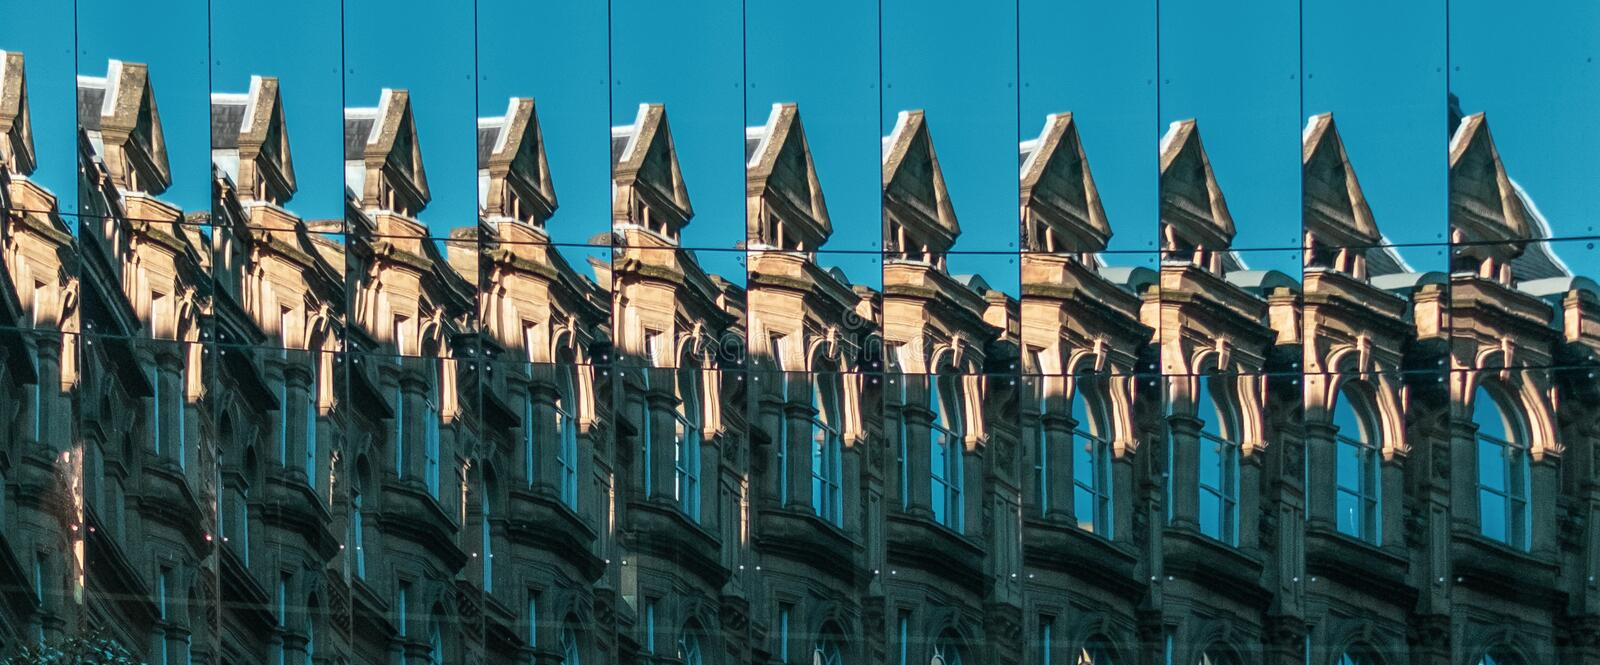 Building Reflected in Multiple Mirrored Windows royalty free stock photo